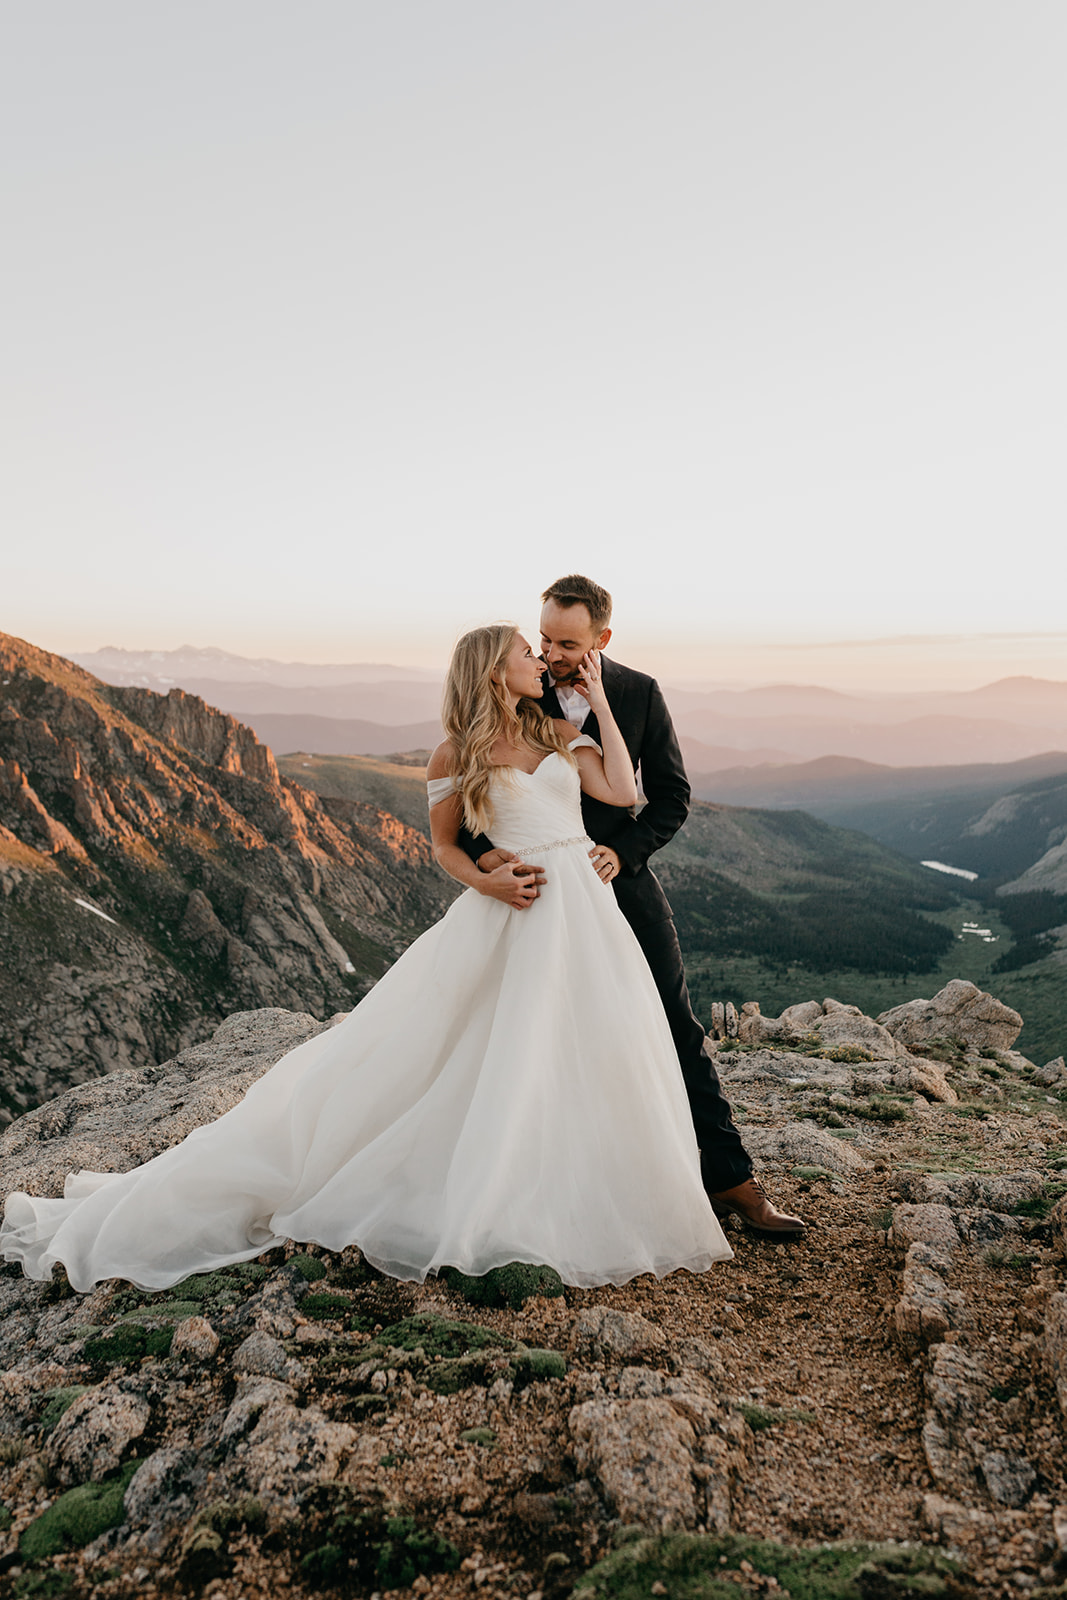 Couple kissing during sunset during their rocky mountain wedding